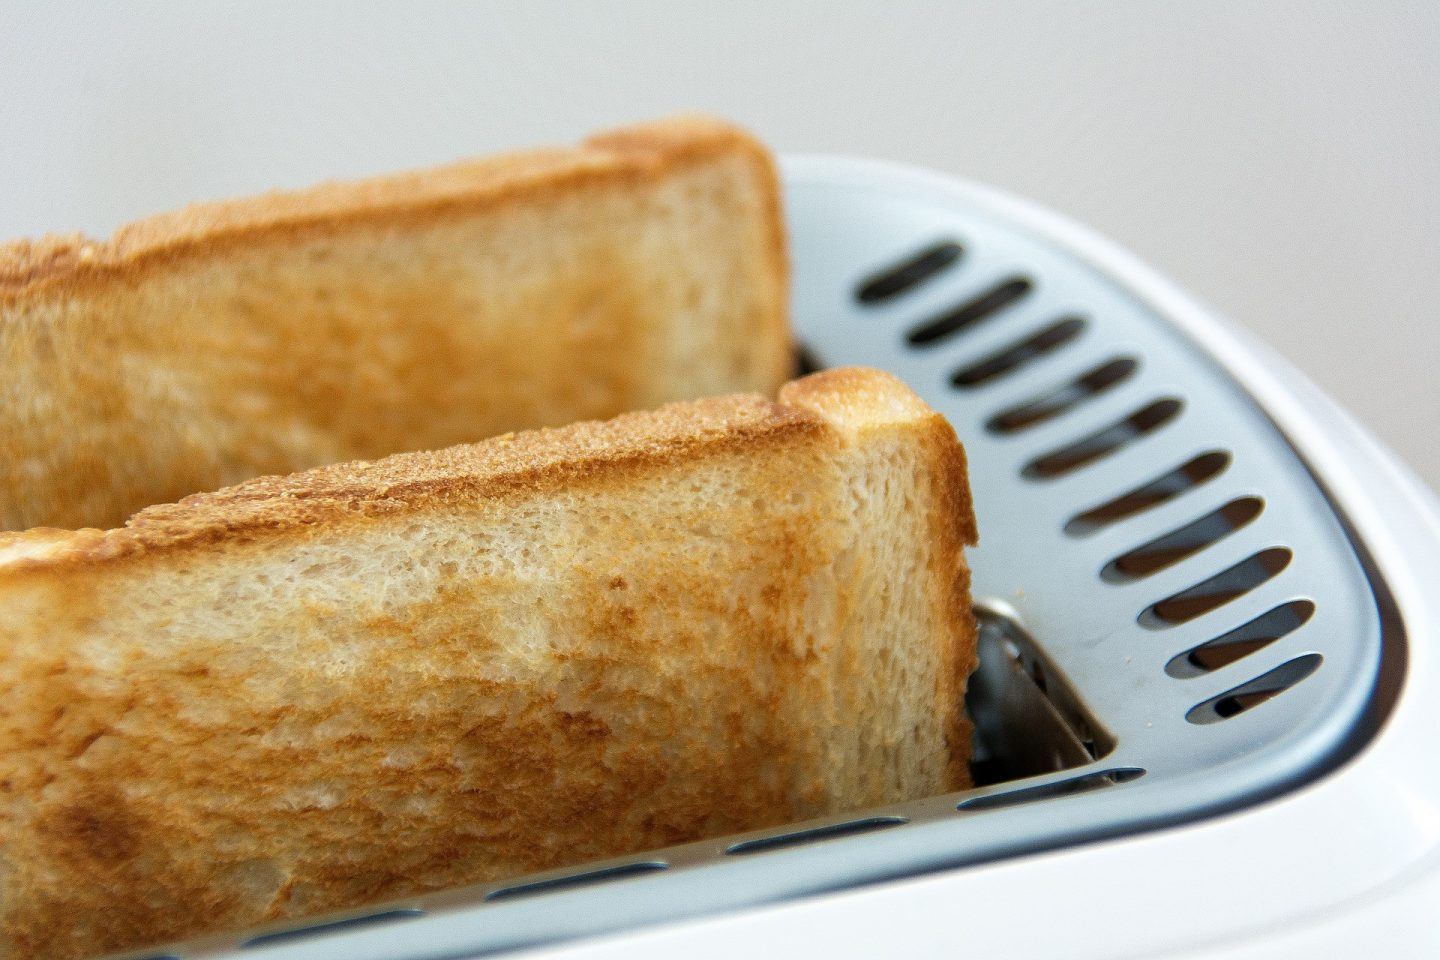 toast just popped from the toaster